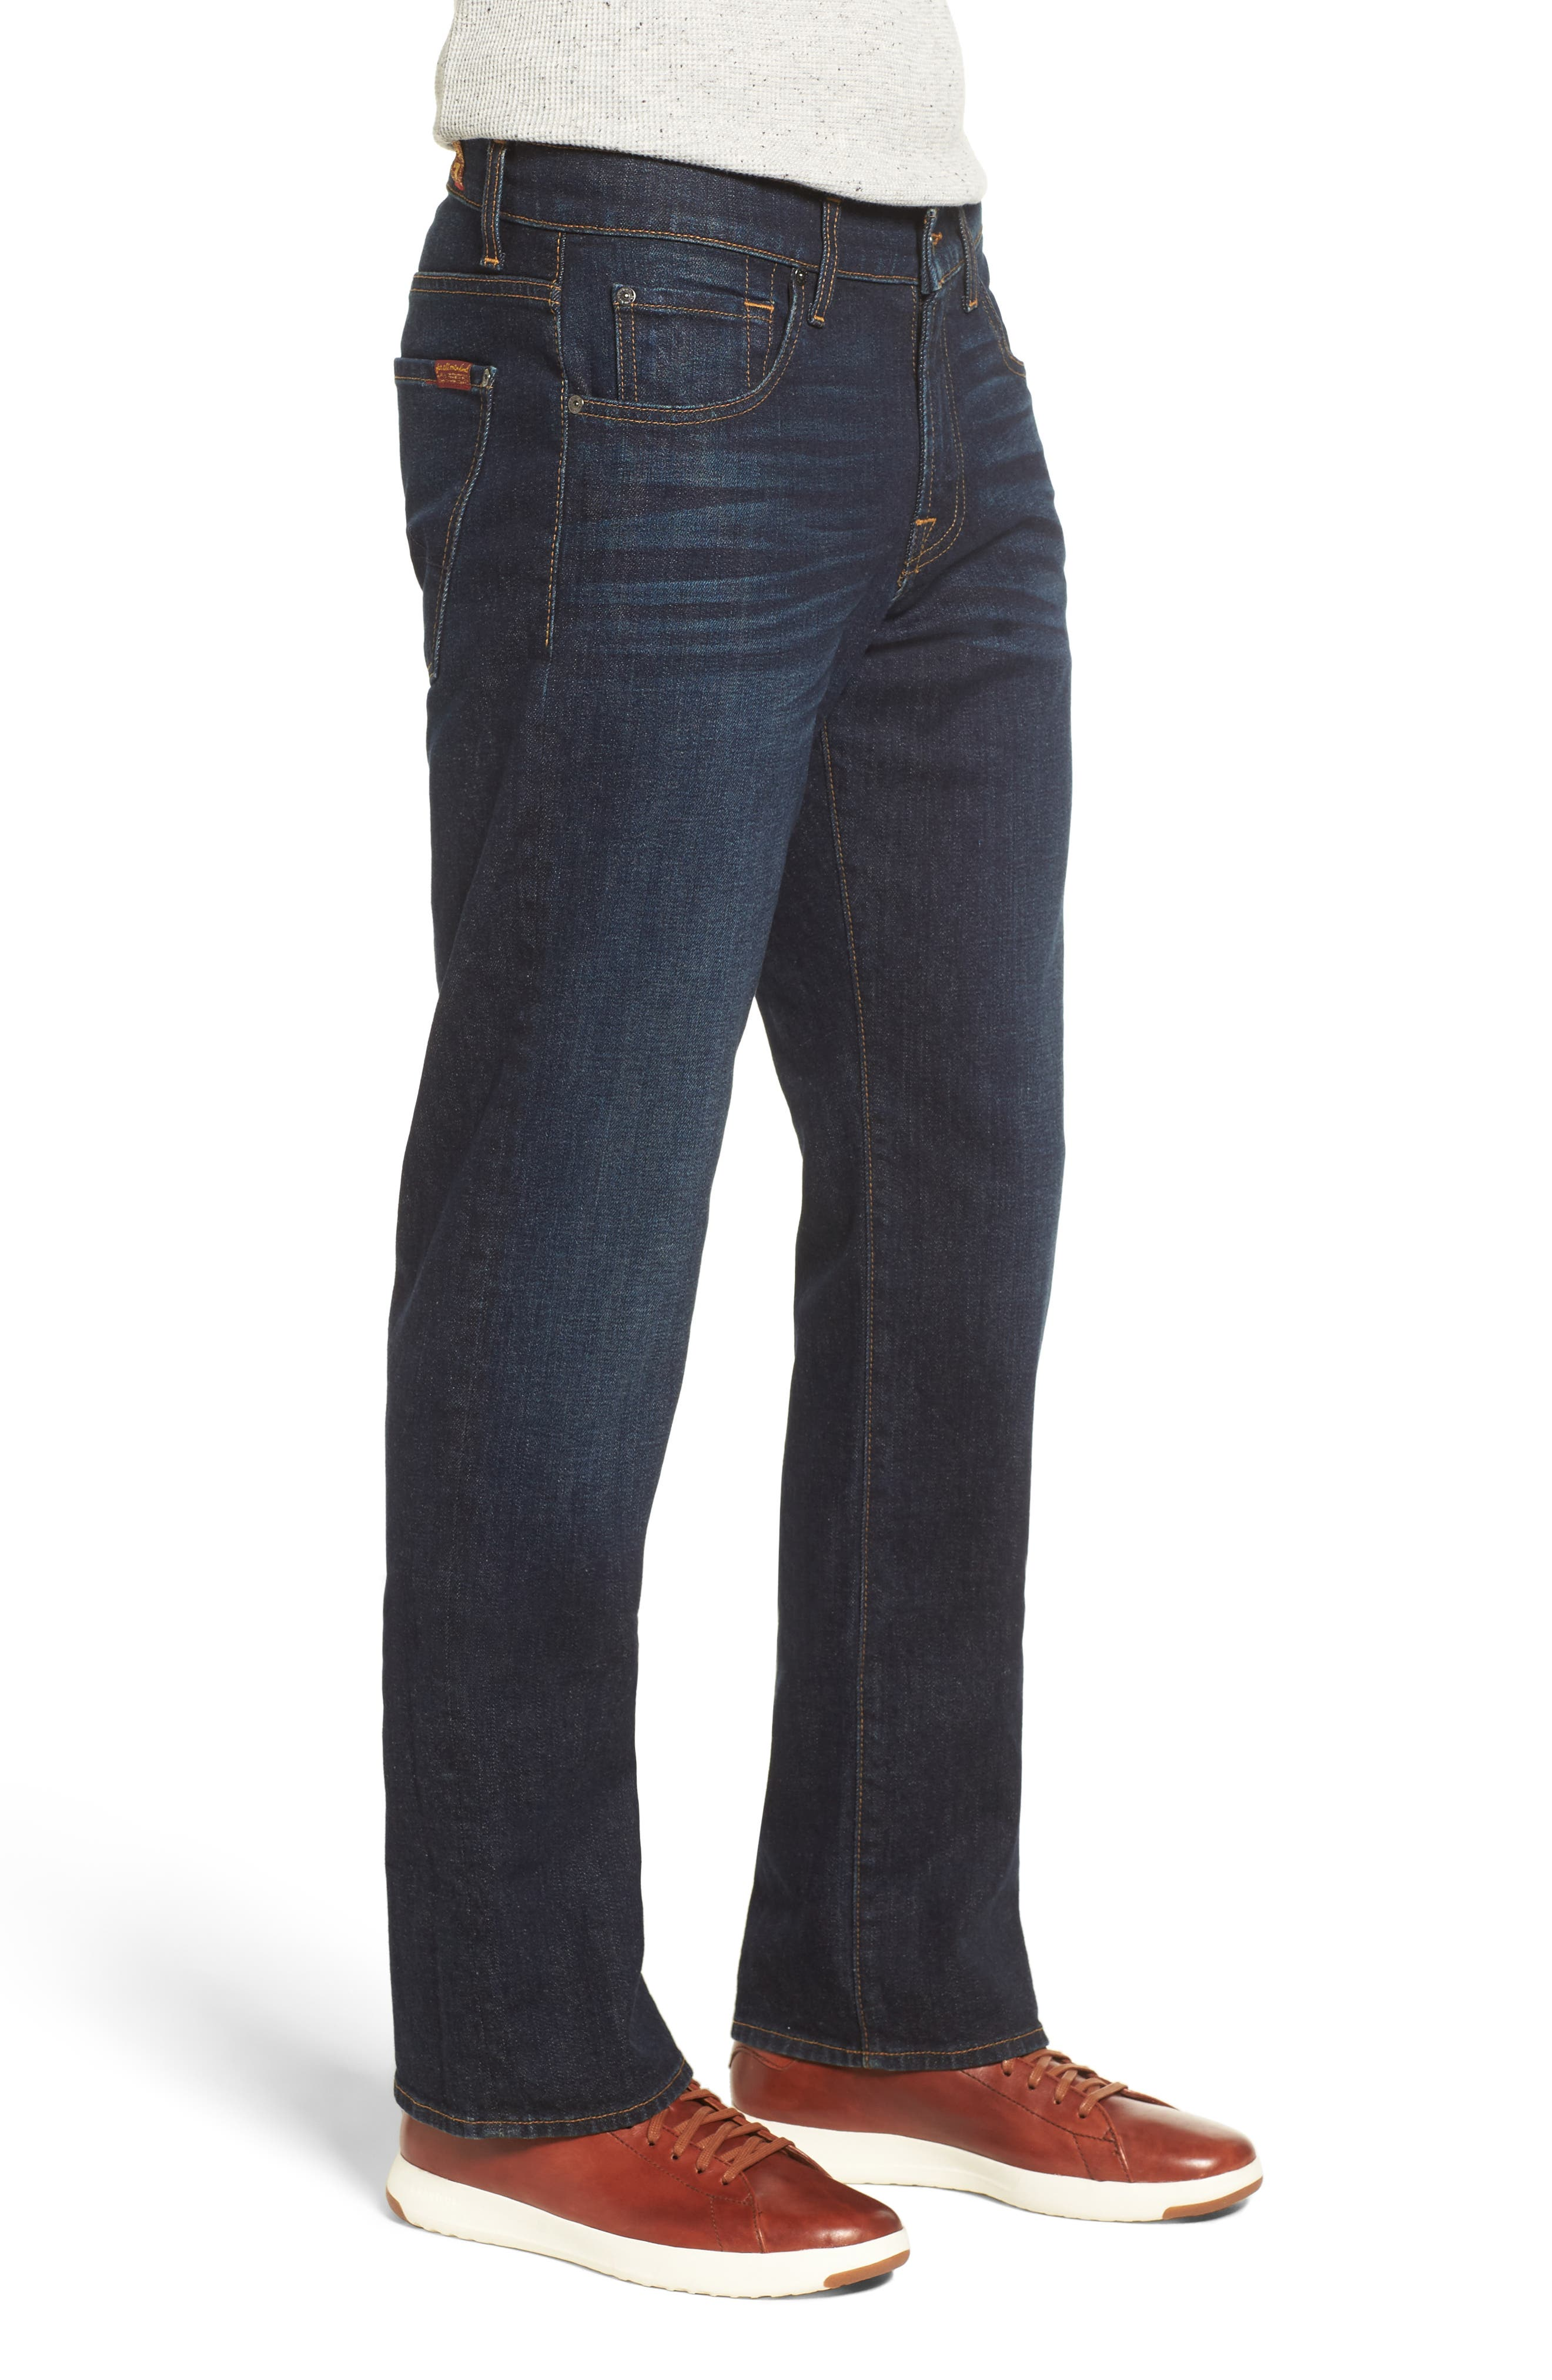 Austyn Relaxed Fit Jeans,                             Alternate thumbnail 3, color,                             402